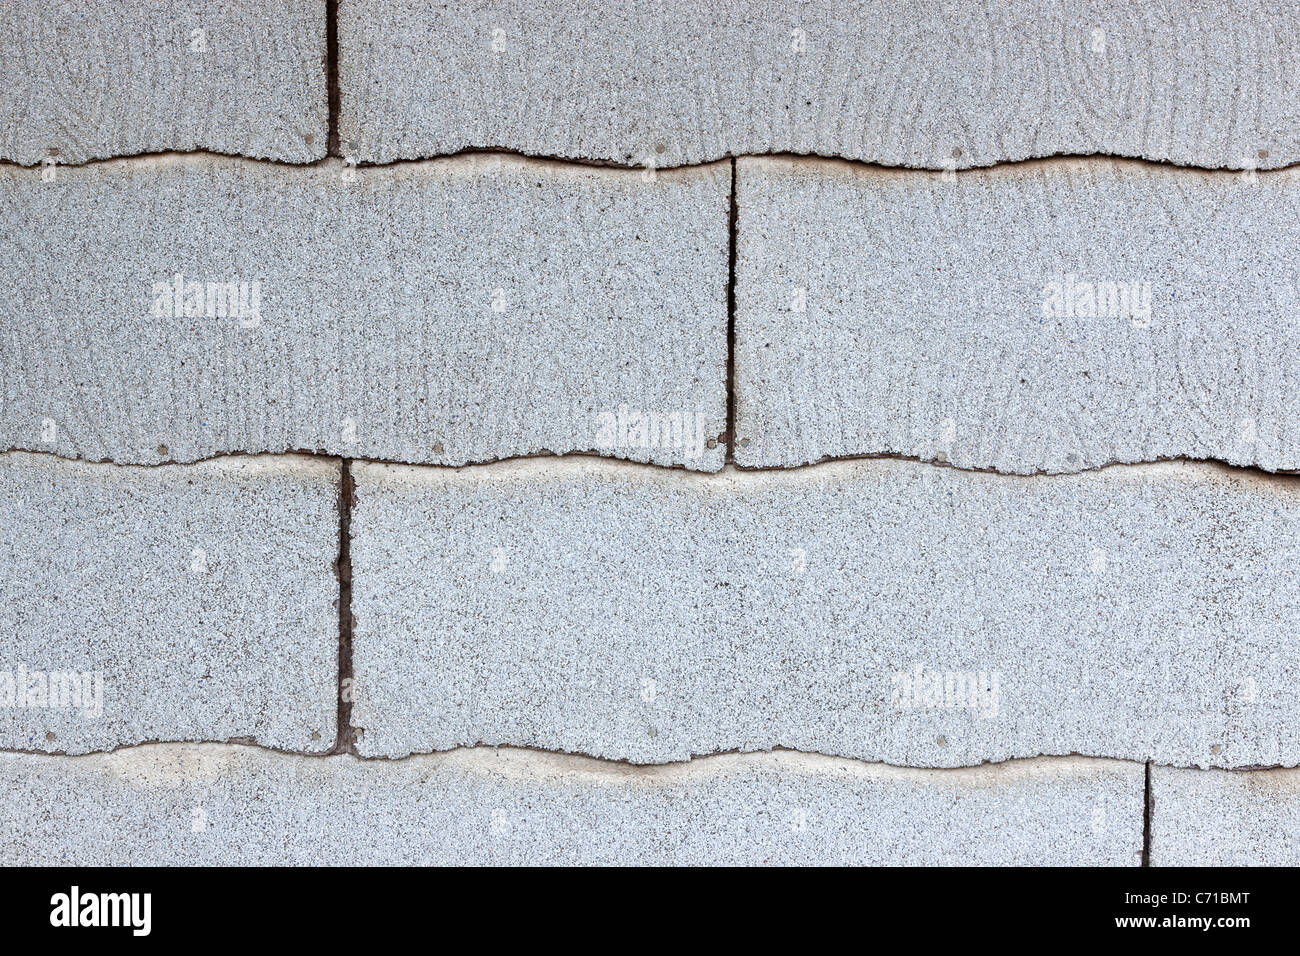 asbestos composition asphalt shingles exterior wall stock photo royalty free image 38754488